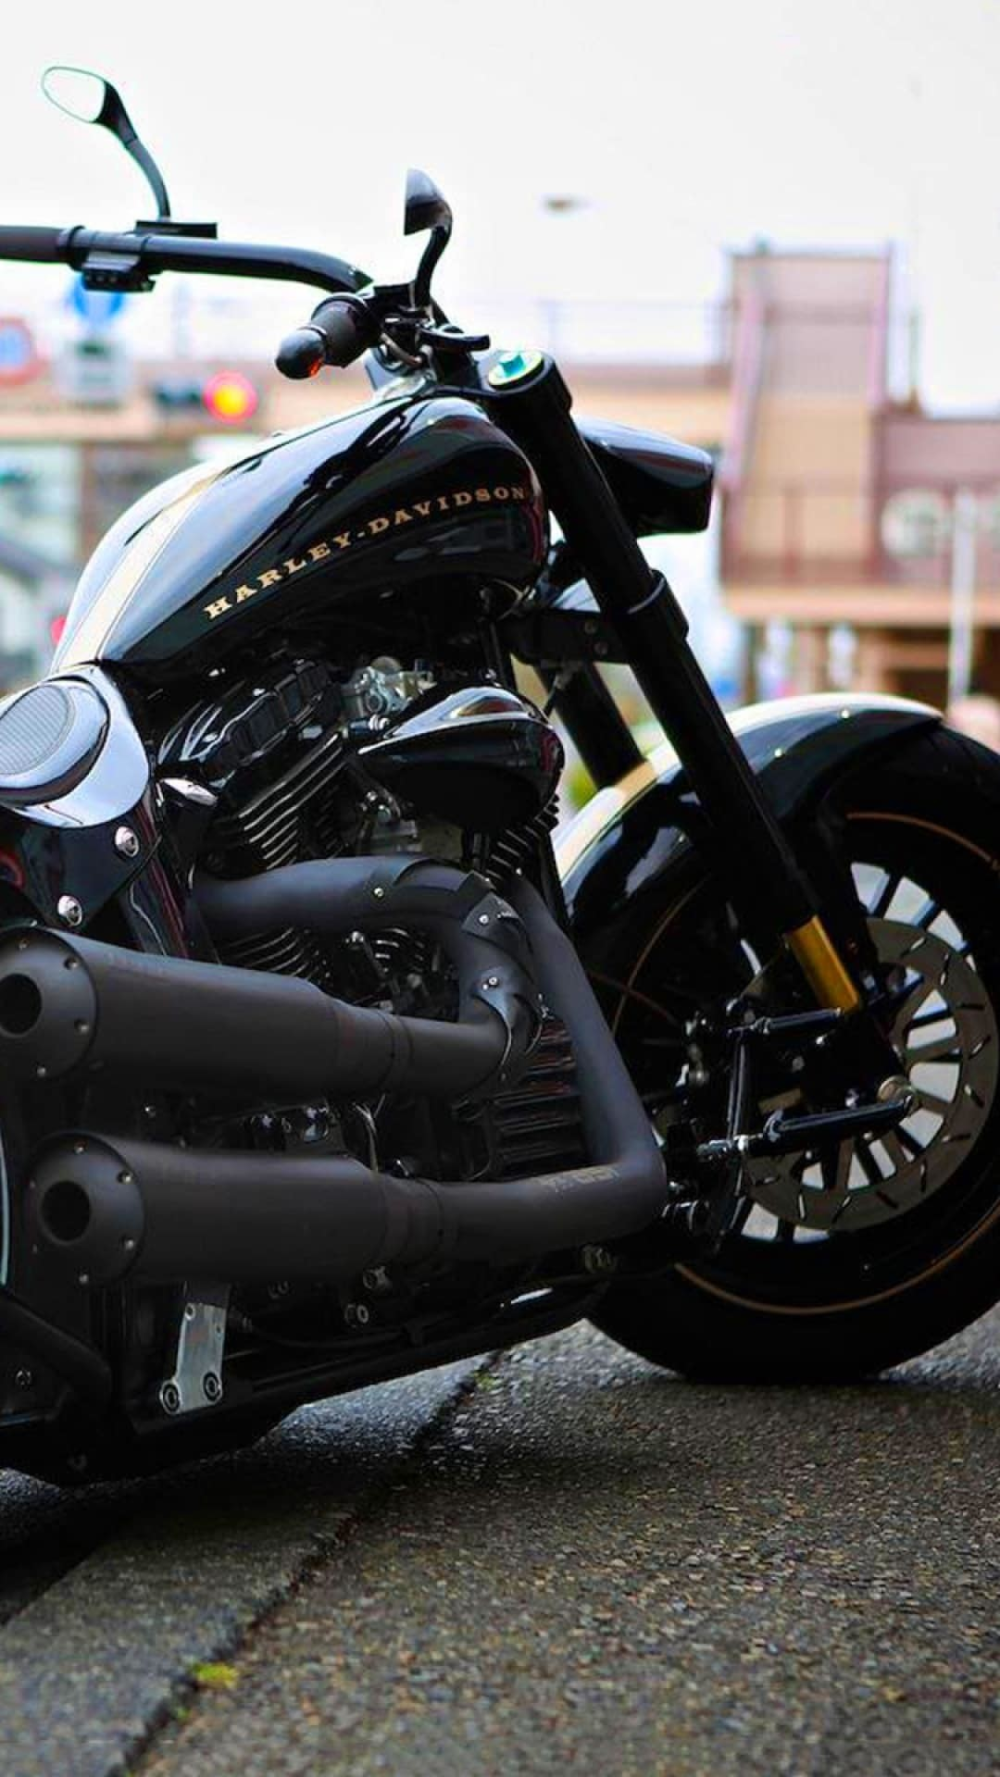 Harley Street 500 Mobile Wallpapers Free Pictures On Greepx